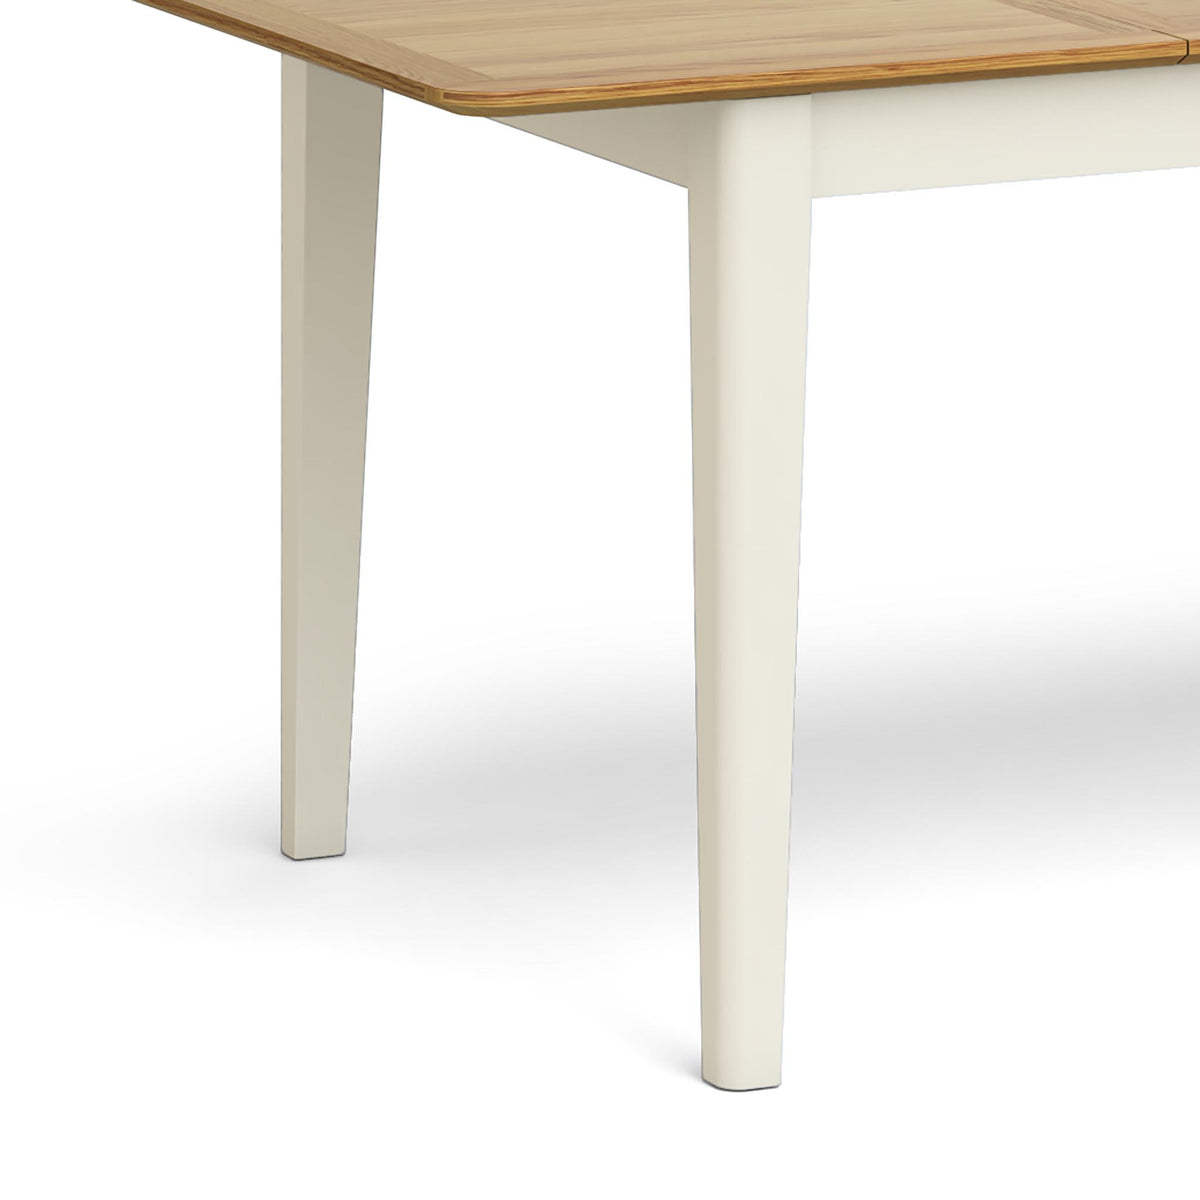 Windsor Cream Compact Extending Table - Close Up of Table Legs